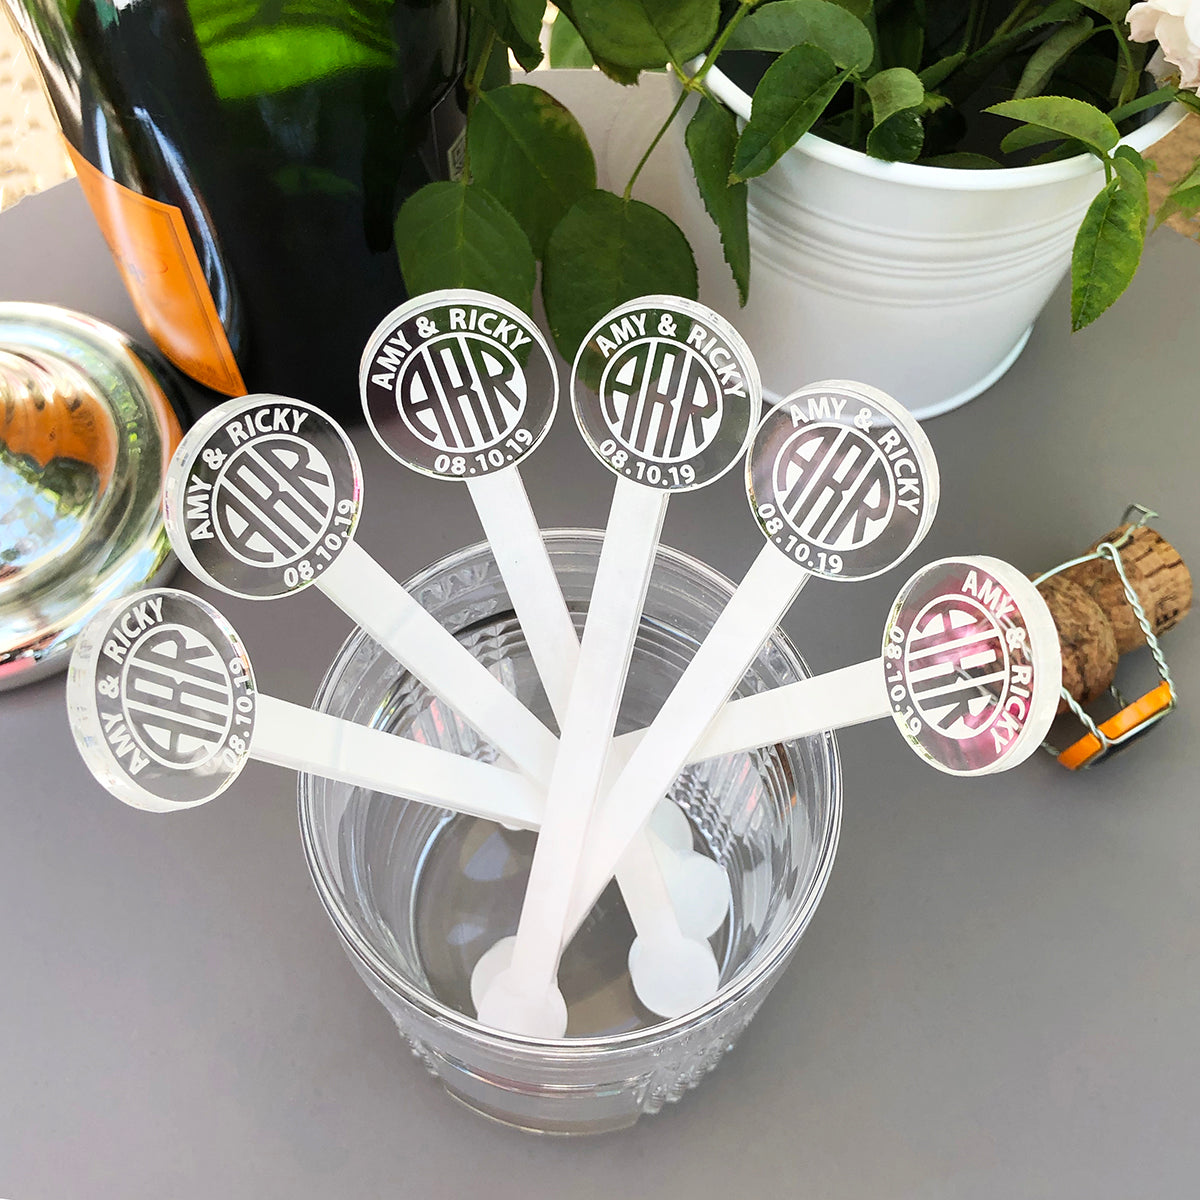 Circular Monogram Swizzle Sticks - Set of 6 | Brit and Bee